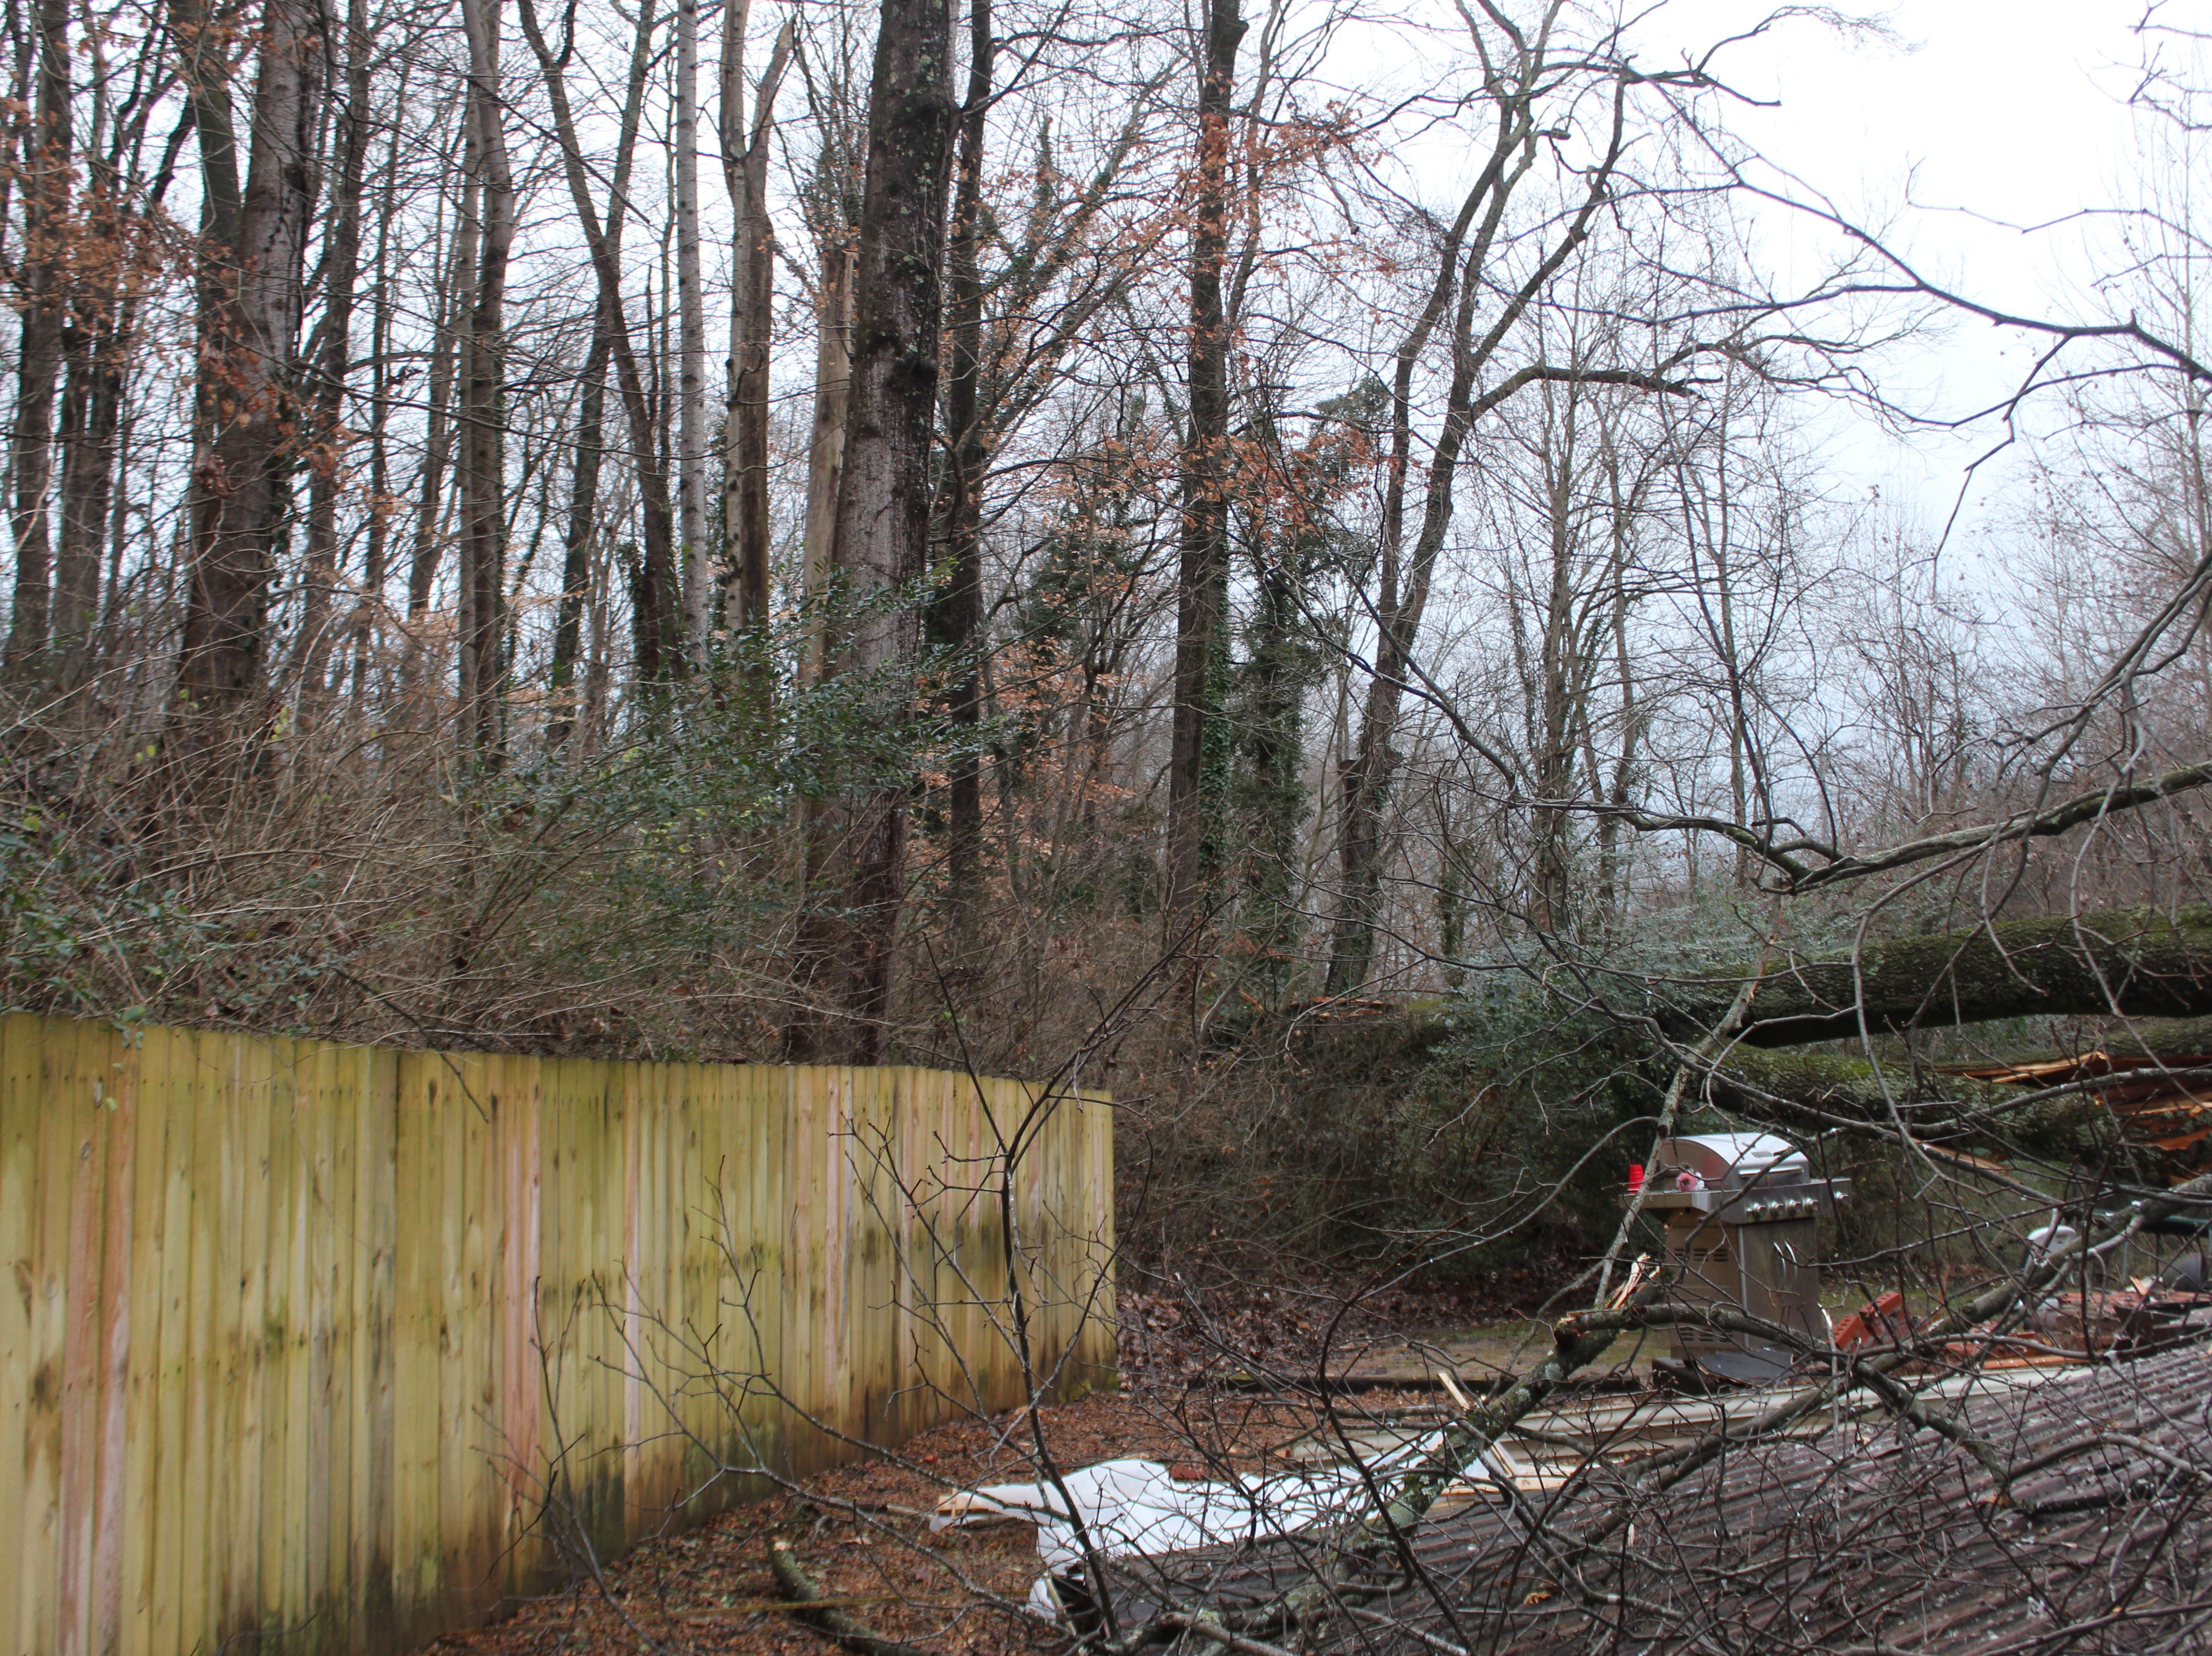 A look at the backyard view of trees that was a selling point for the Tinsley family when they bought the house 8 years ago, but which ultimately destroyed their home when a massive tree came crashing down on New Year's Eve.